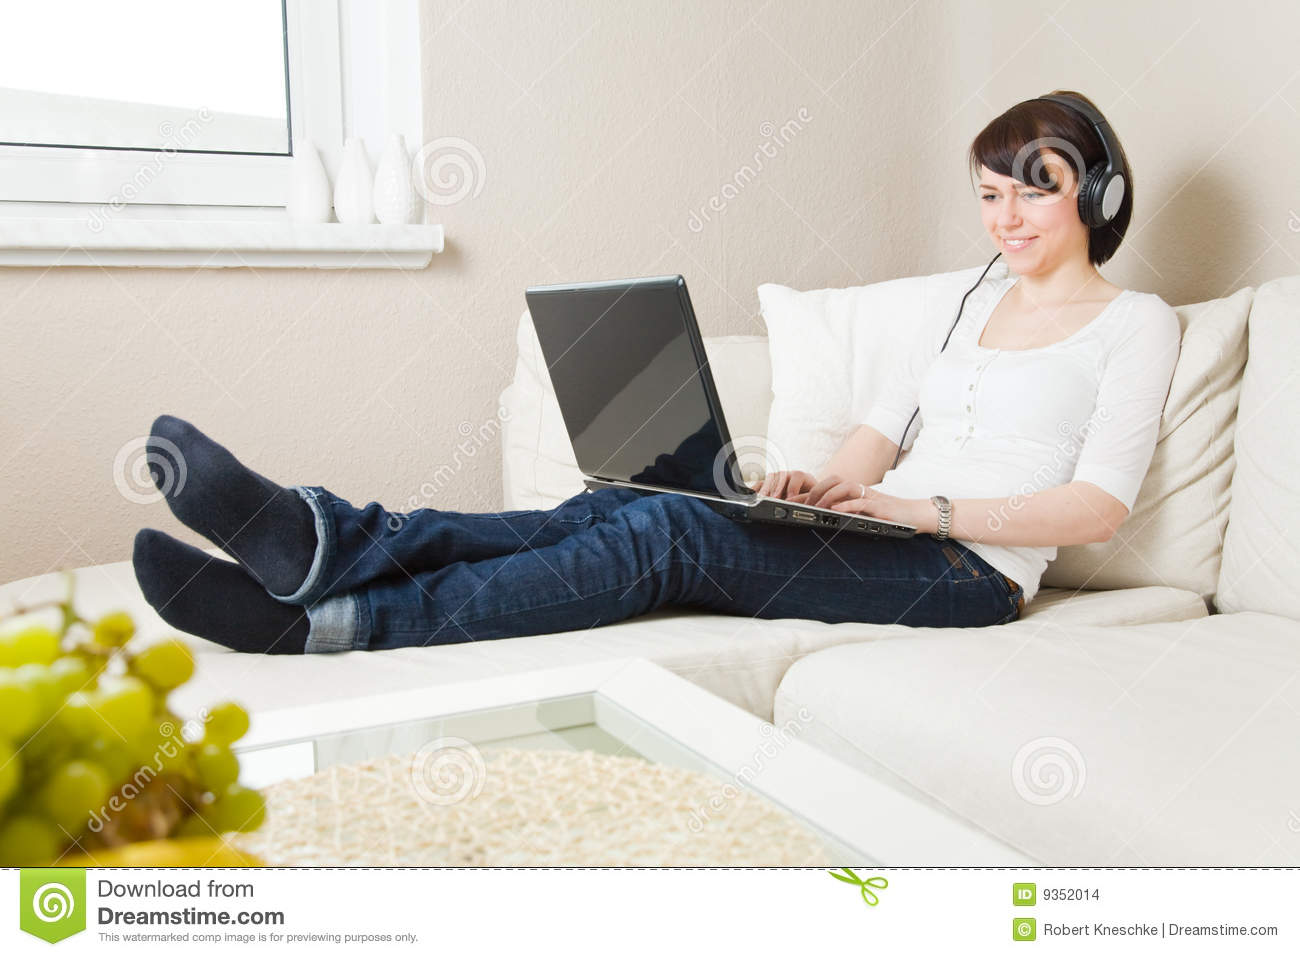 Woman with laptop and headphones